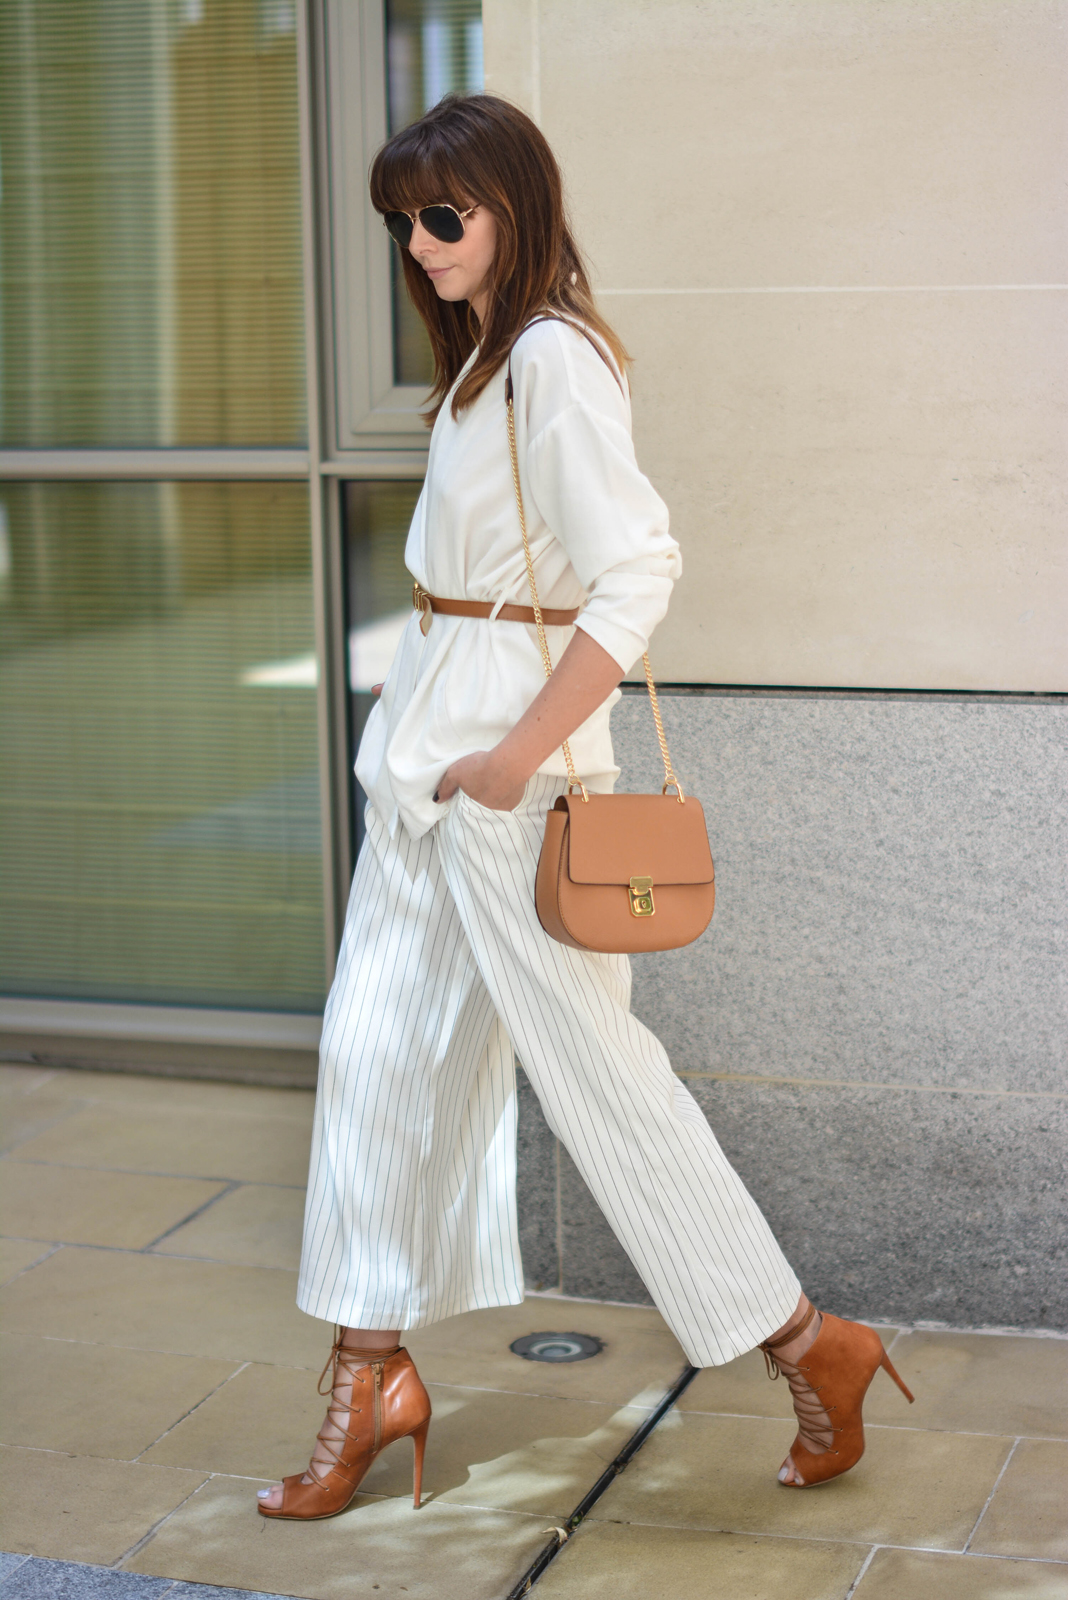 EJSTYLE - Emma Hill wearing Gestuz white wrap jacket, tan skinny waist belt, Finders Keepers white pinstripe wide leg culottes, Tan Chloe 'drew' dupe bag, tan lace up heels